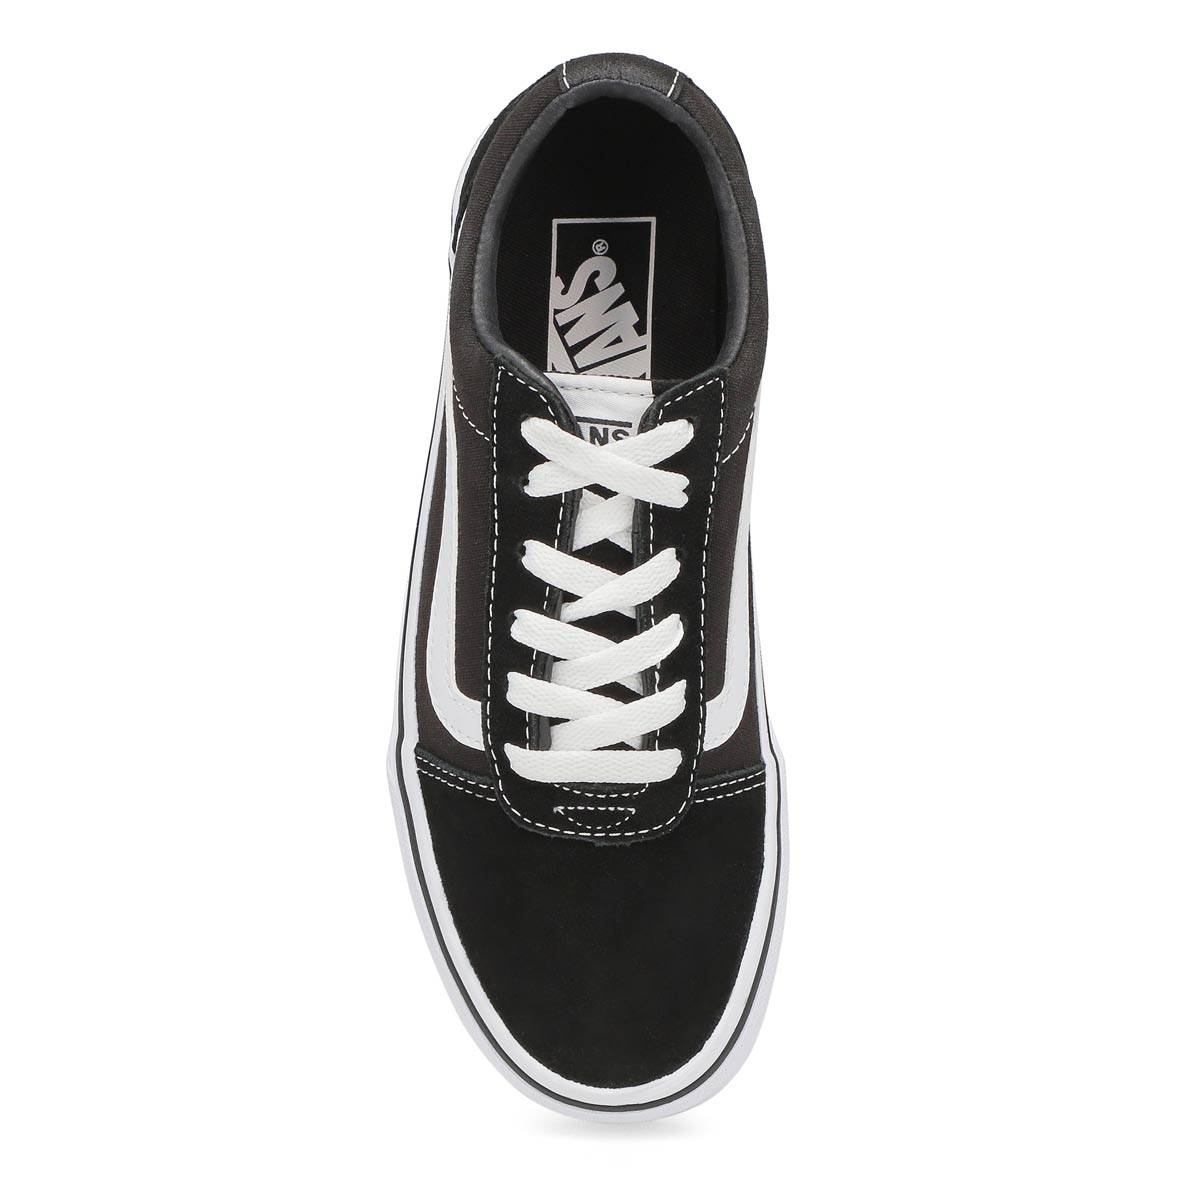 Lds Ward blk/wht lace up sneaker